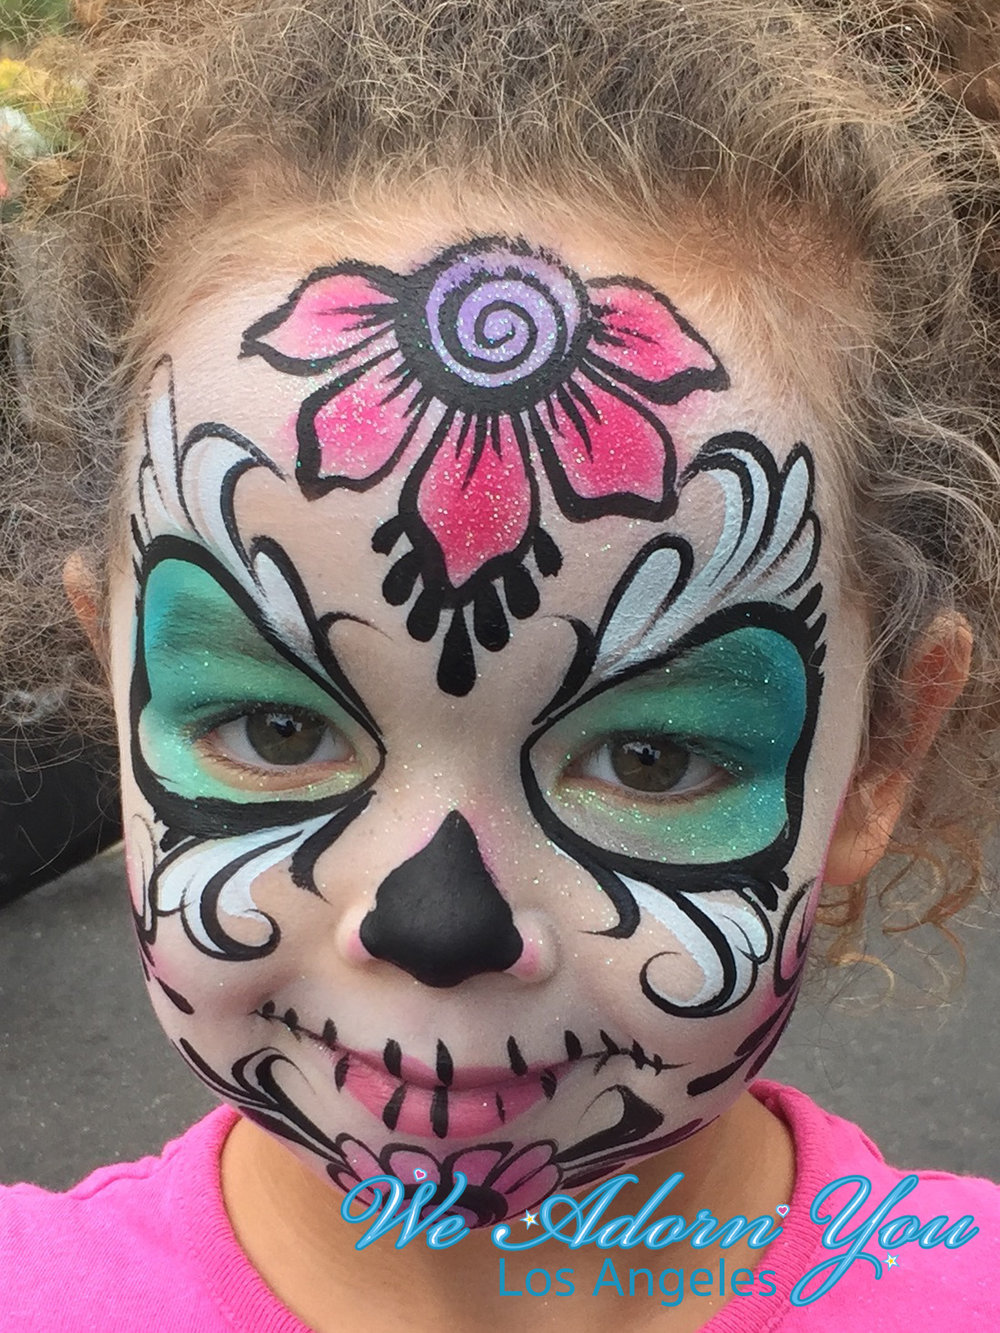 We Adorn You Los Angeles Face Painting Sugar Skull.jpg